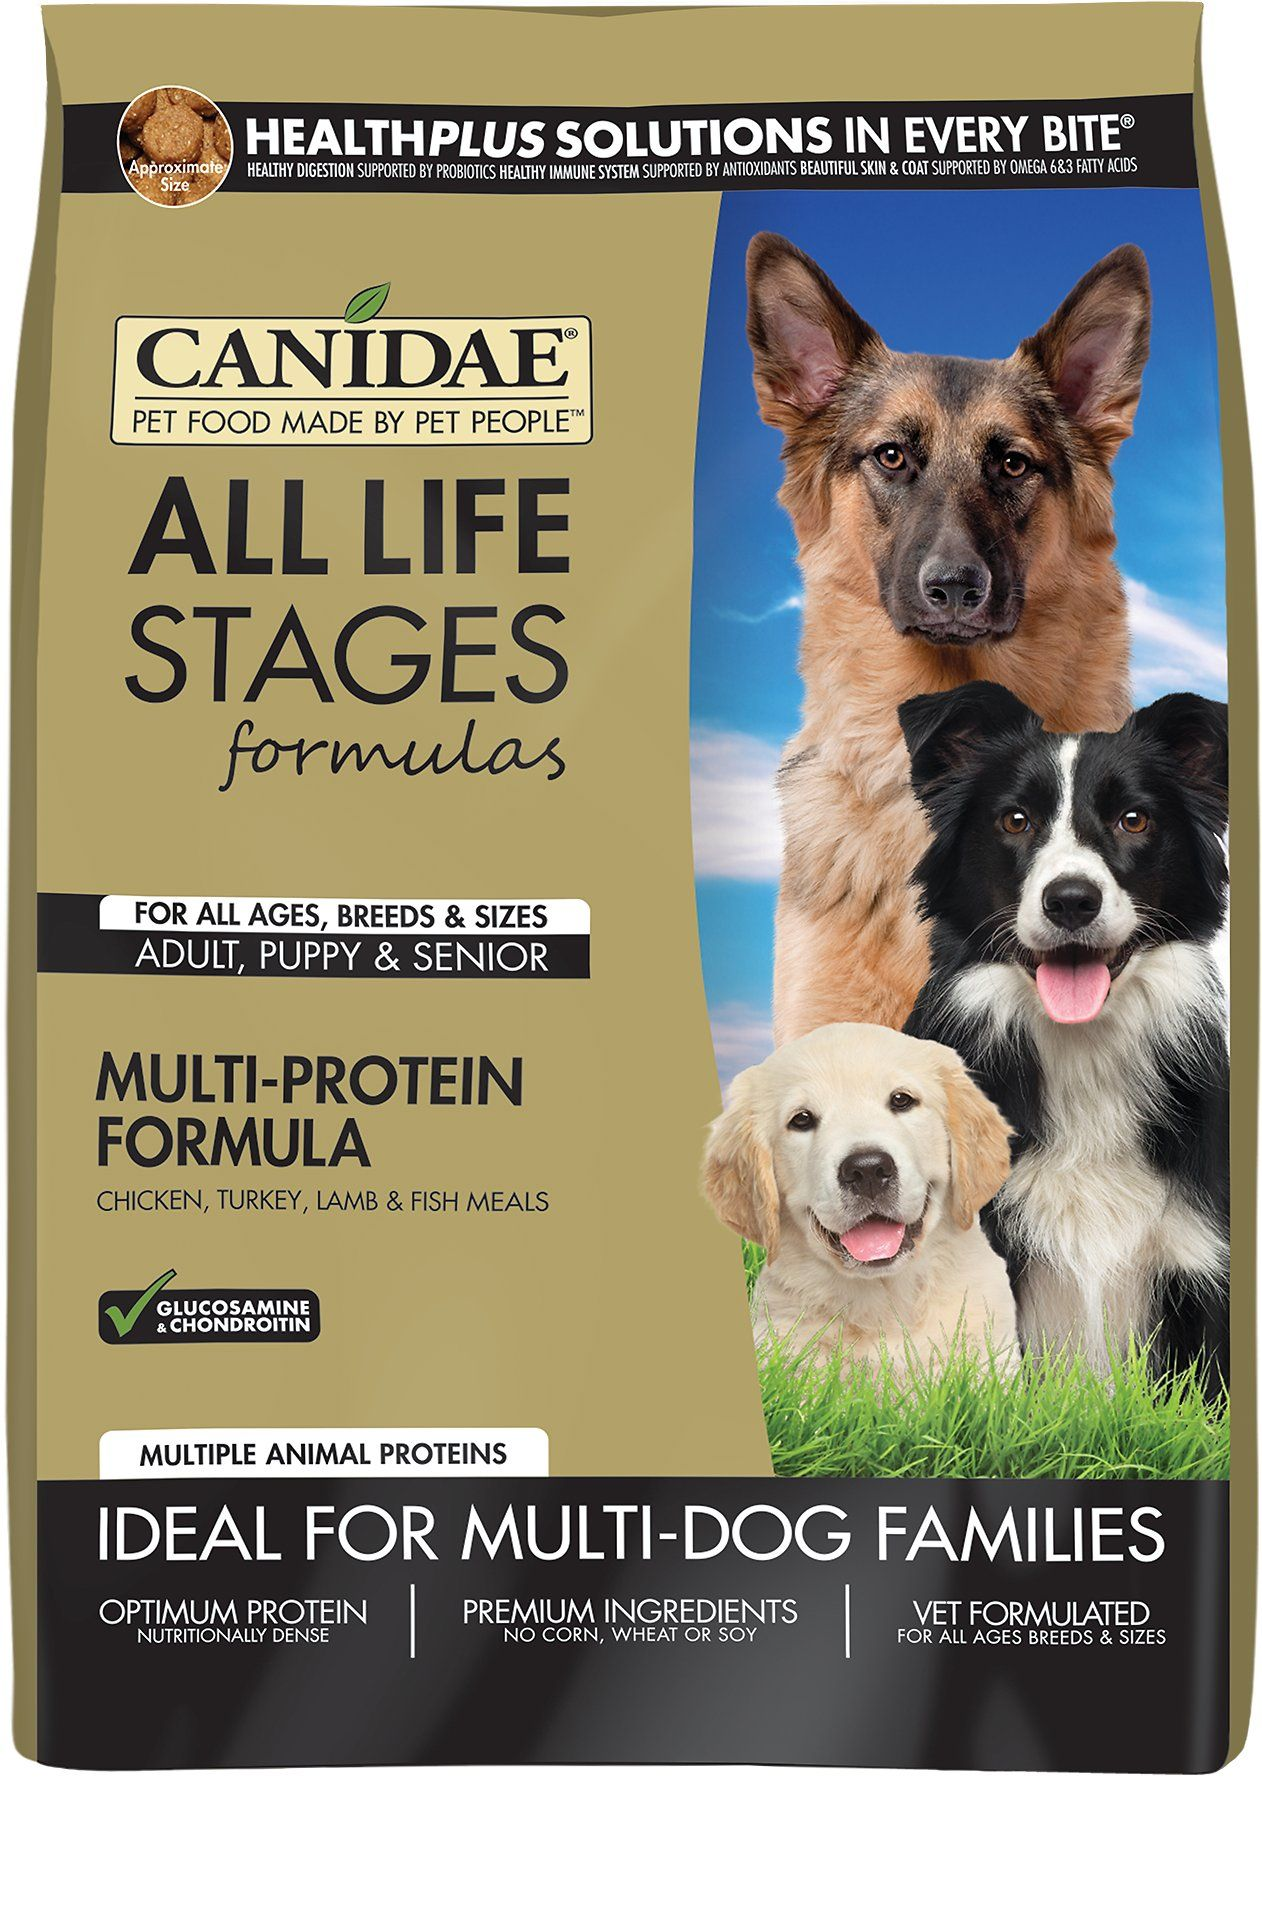 Canidae all life stages multiprotein formula dry dog food